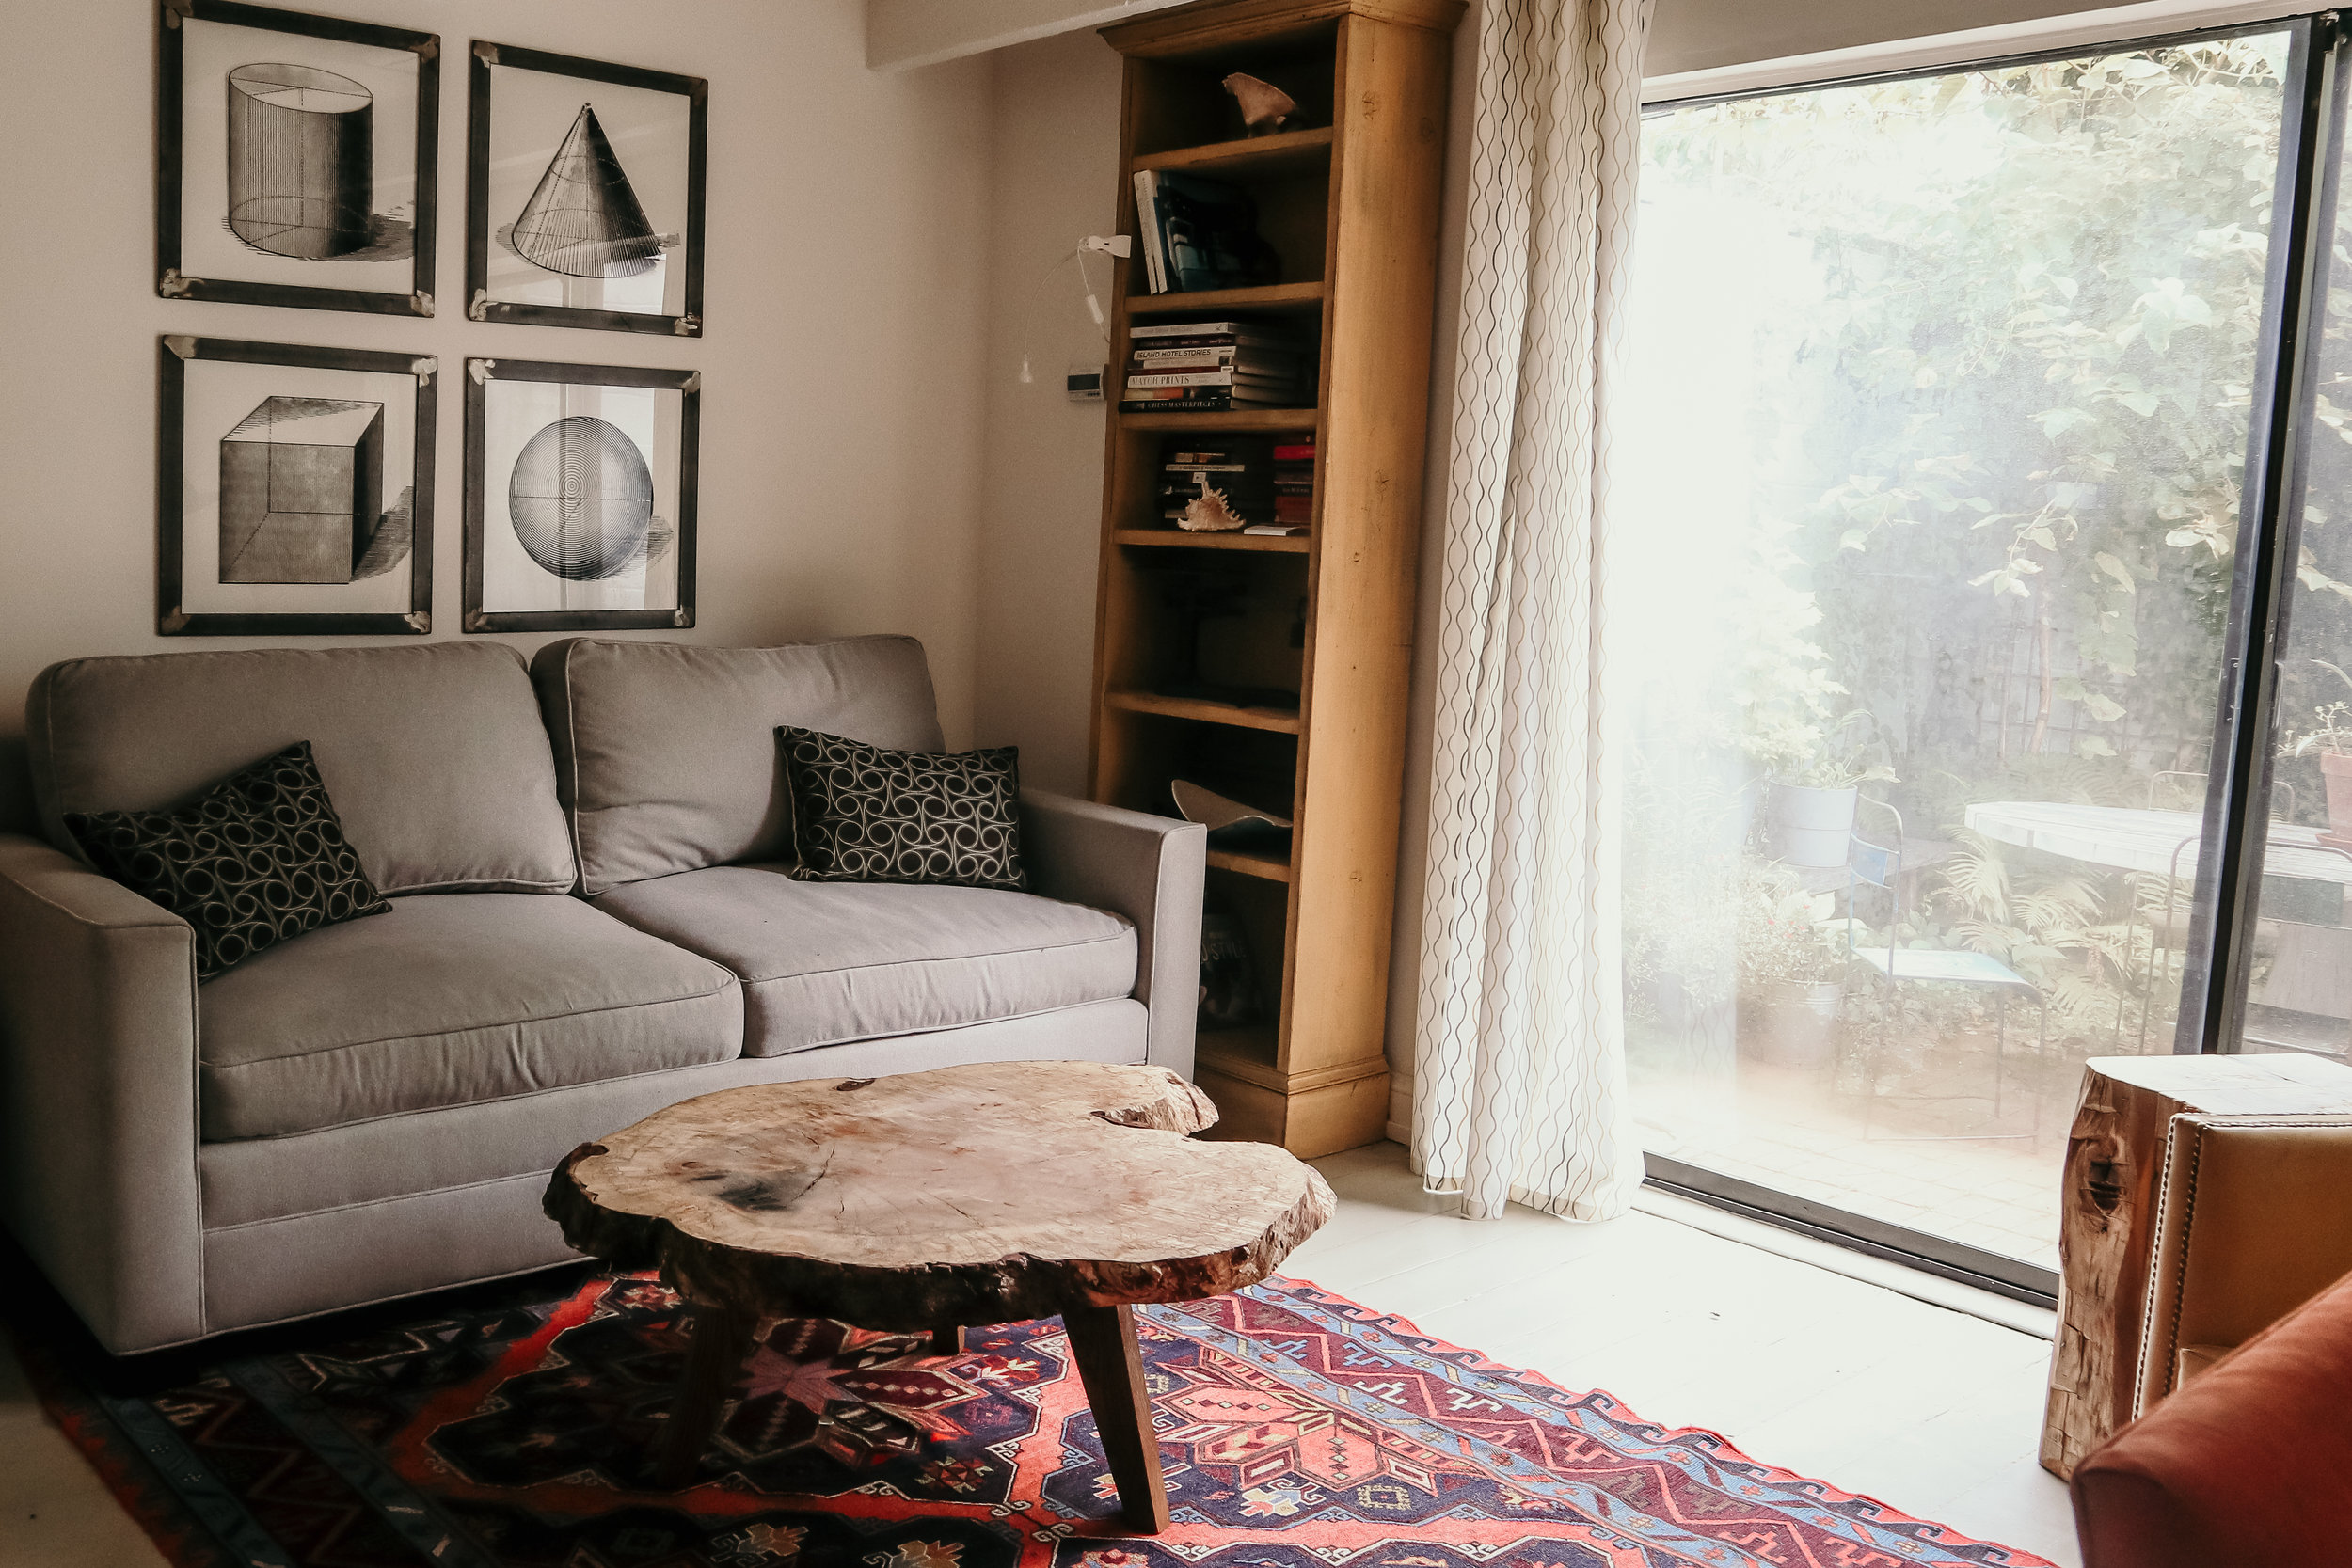 10K Dollar Day's Airbnb choice for Philadelphia City Center - photo by Ash Burns